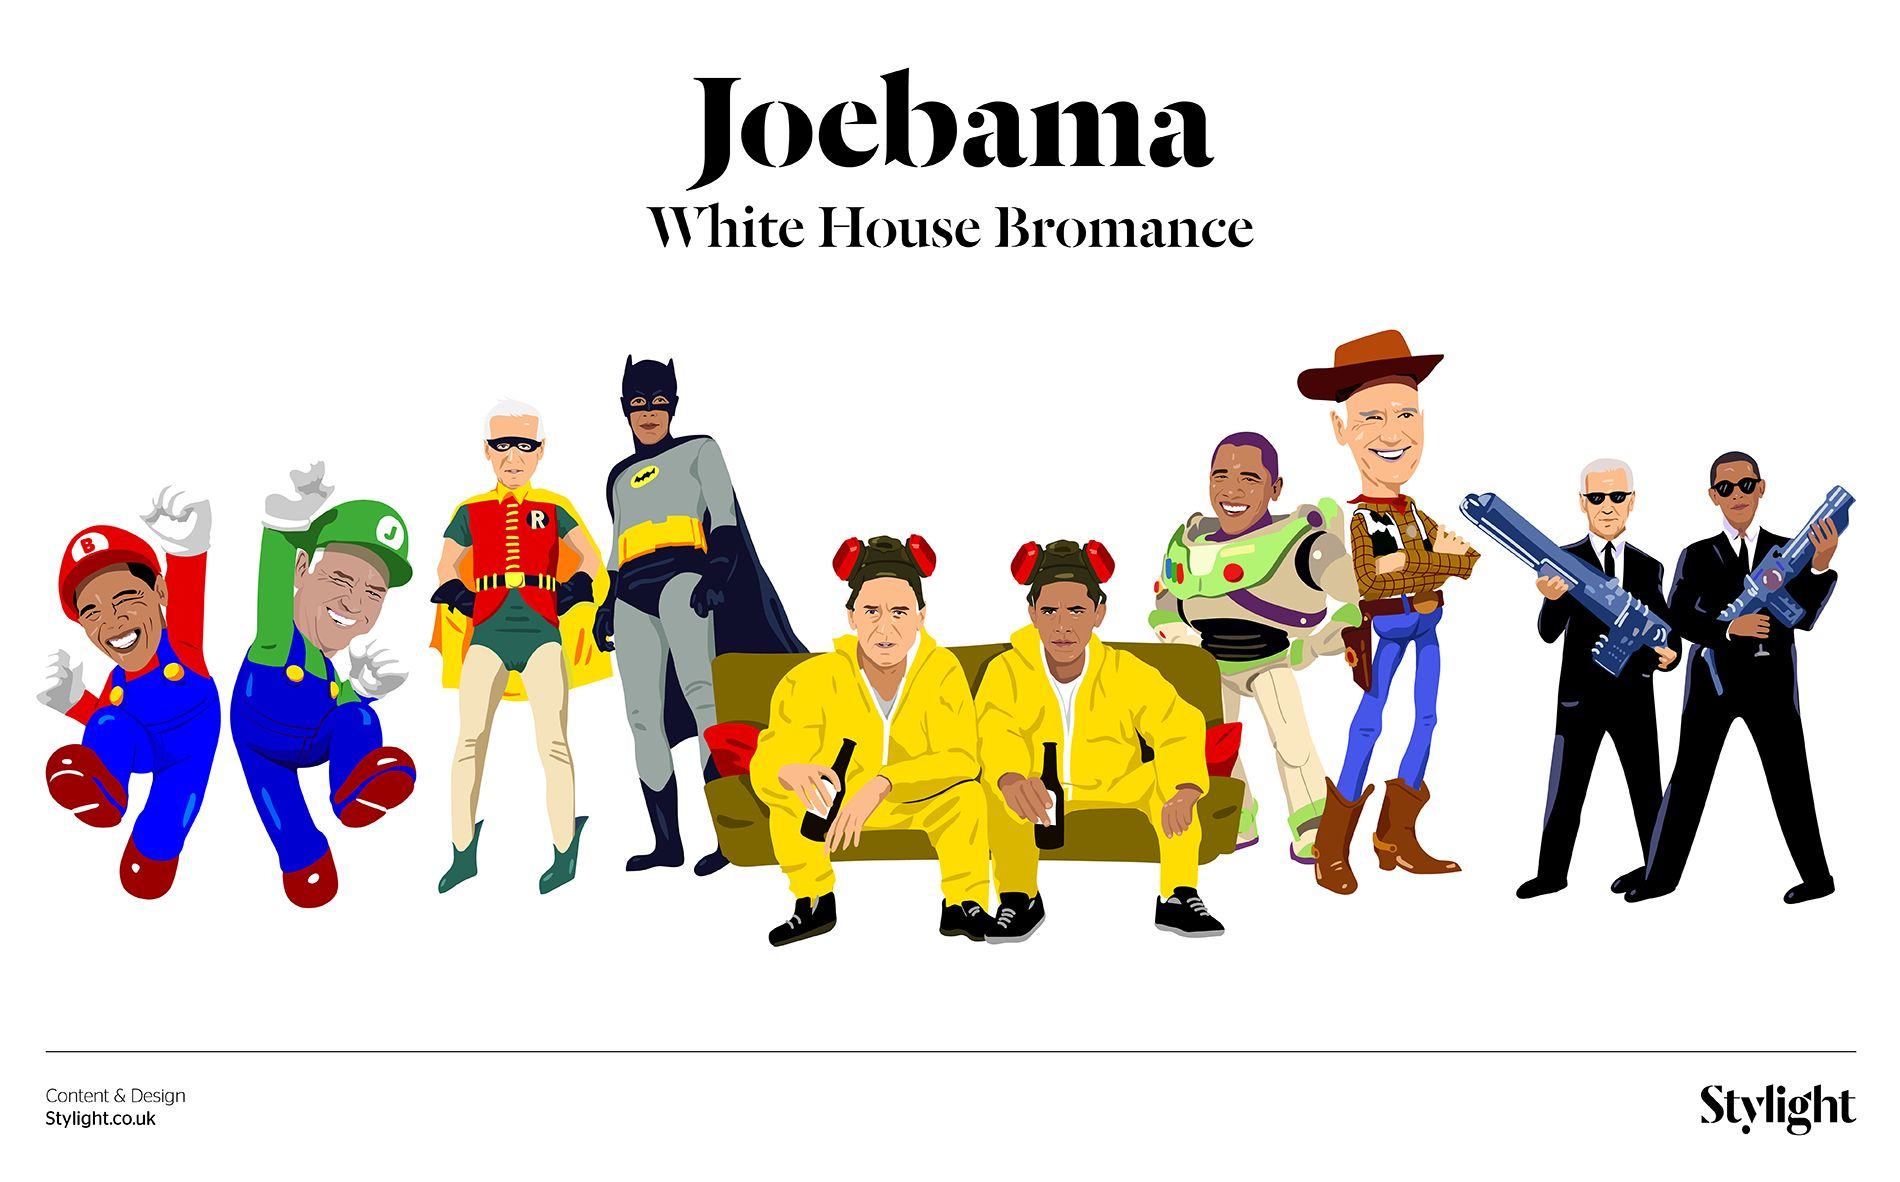 Joebama: White House Bromance